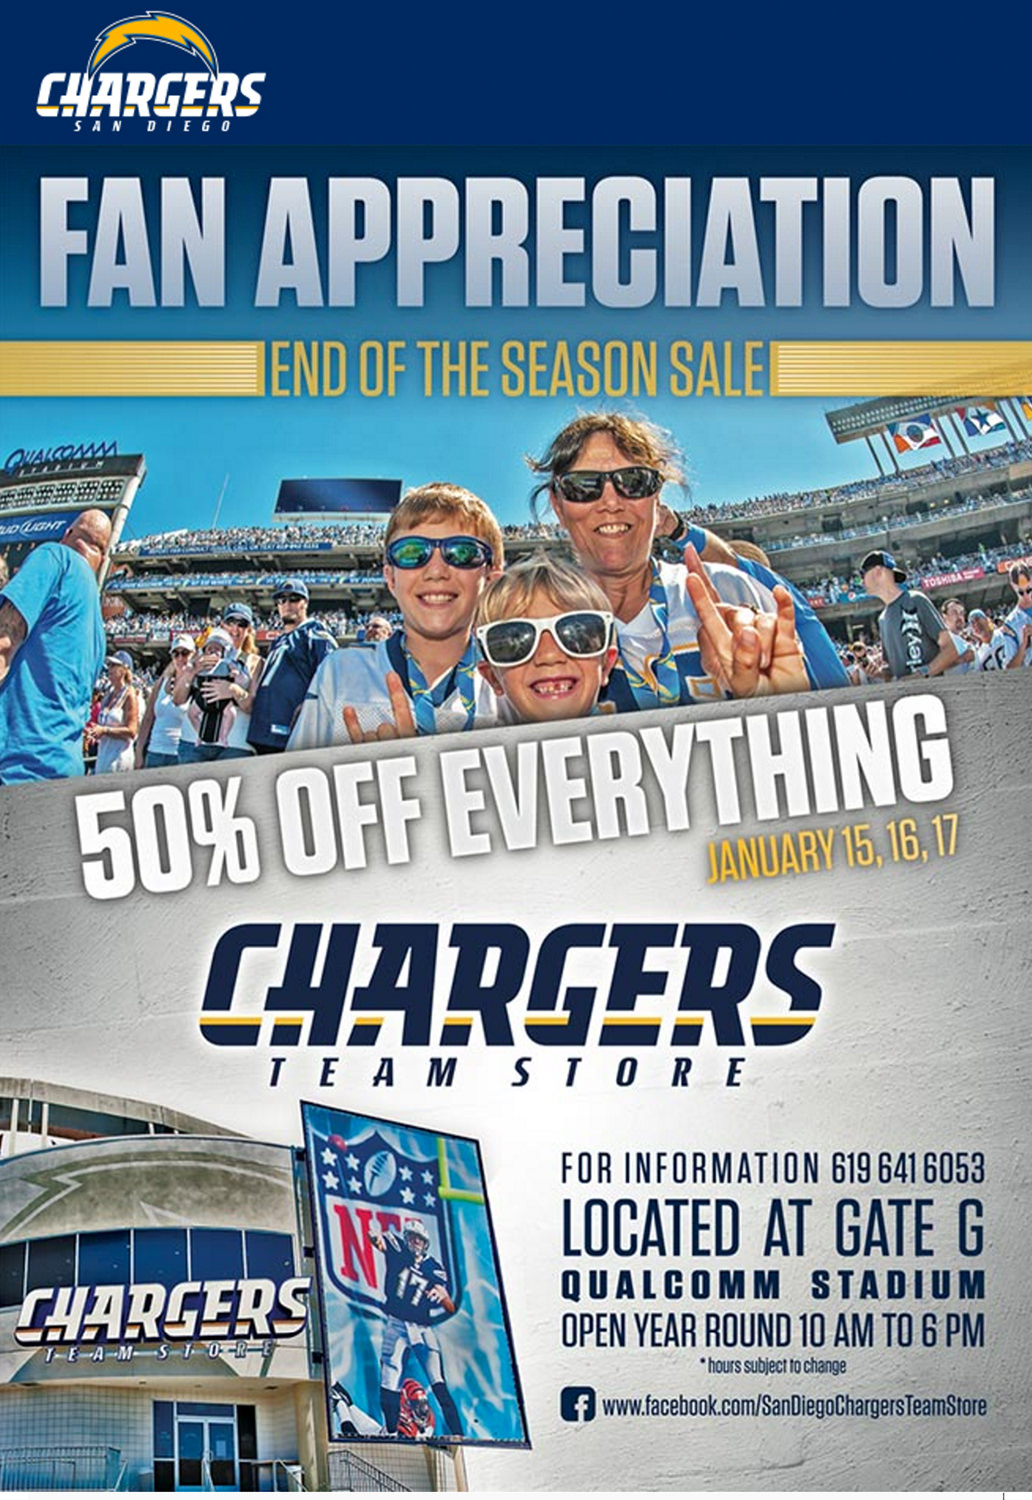 Media and Entertainment Email Marketing - San Diego Chargers